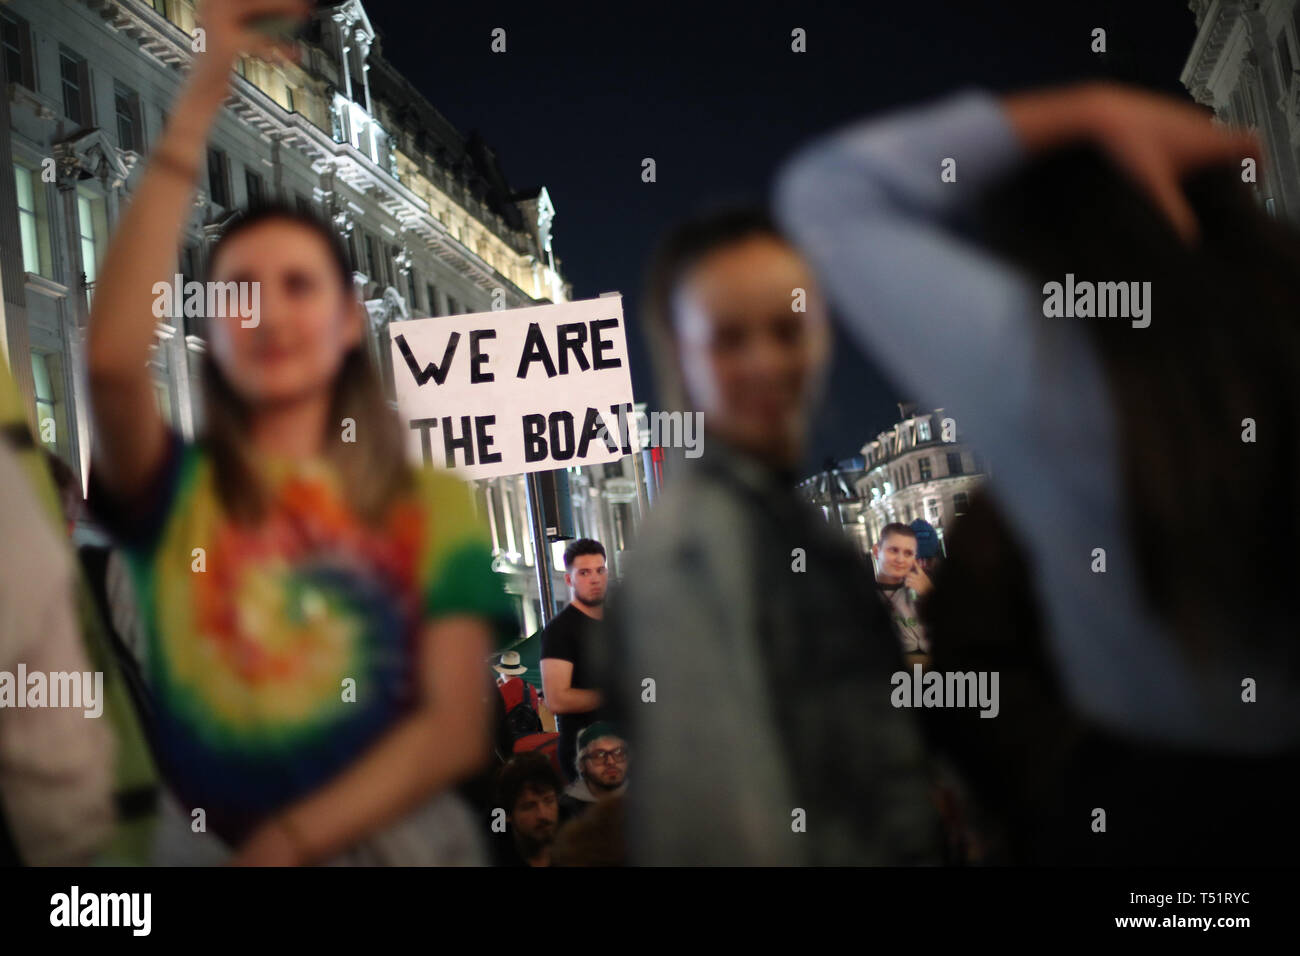 Extinction Rebellion demonstrators at Oxford Circus in London. Stock Photo